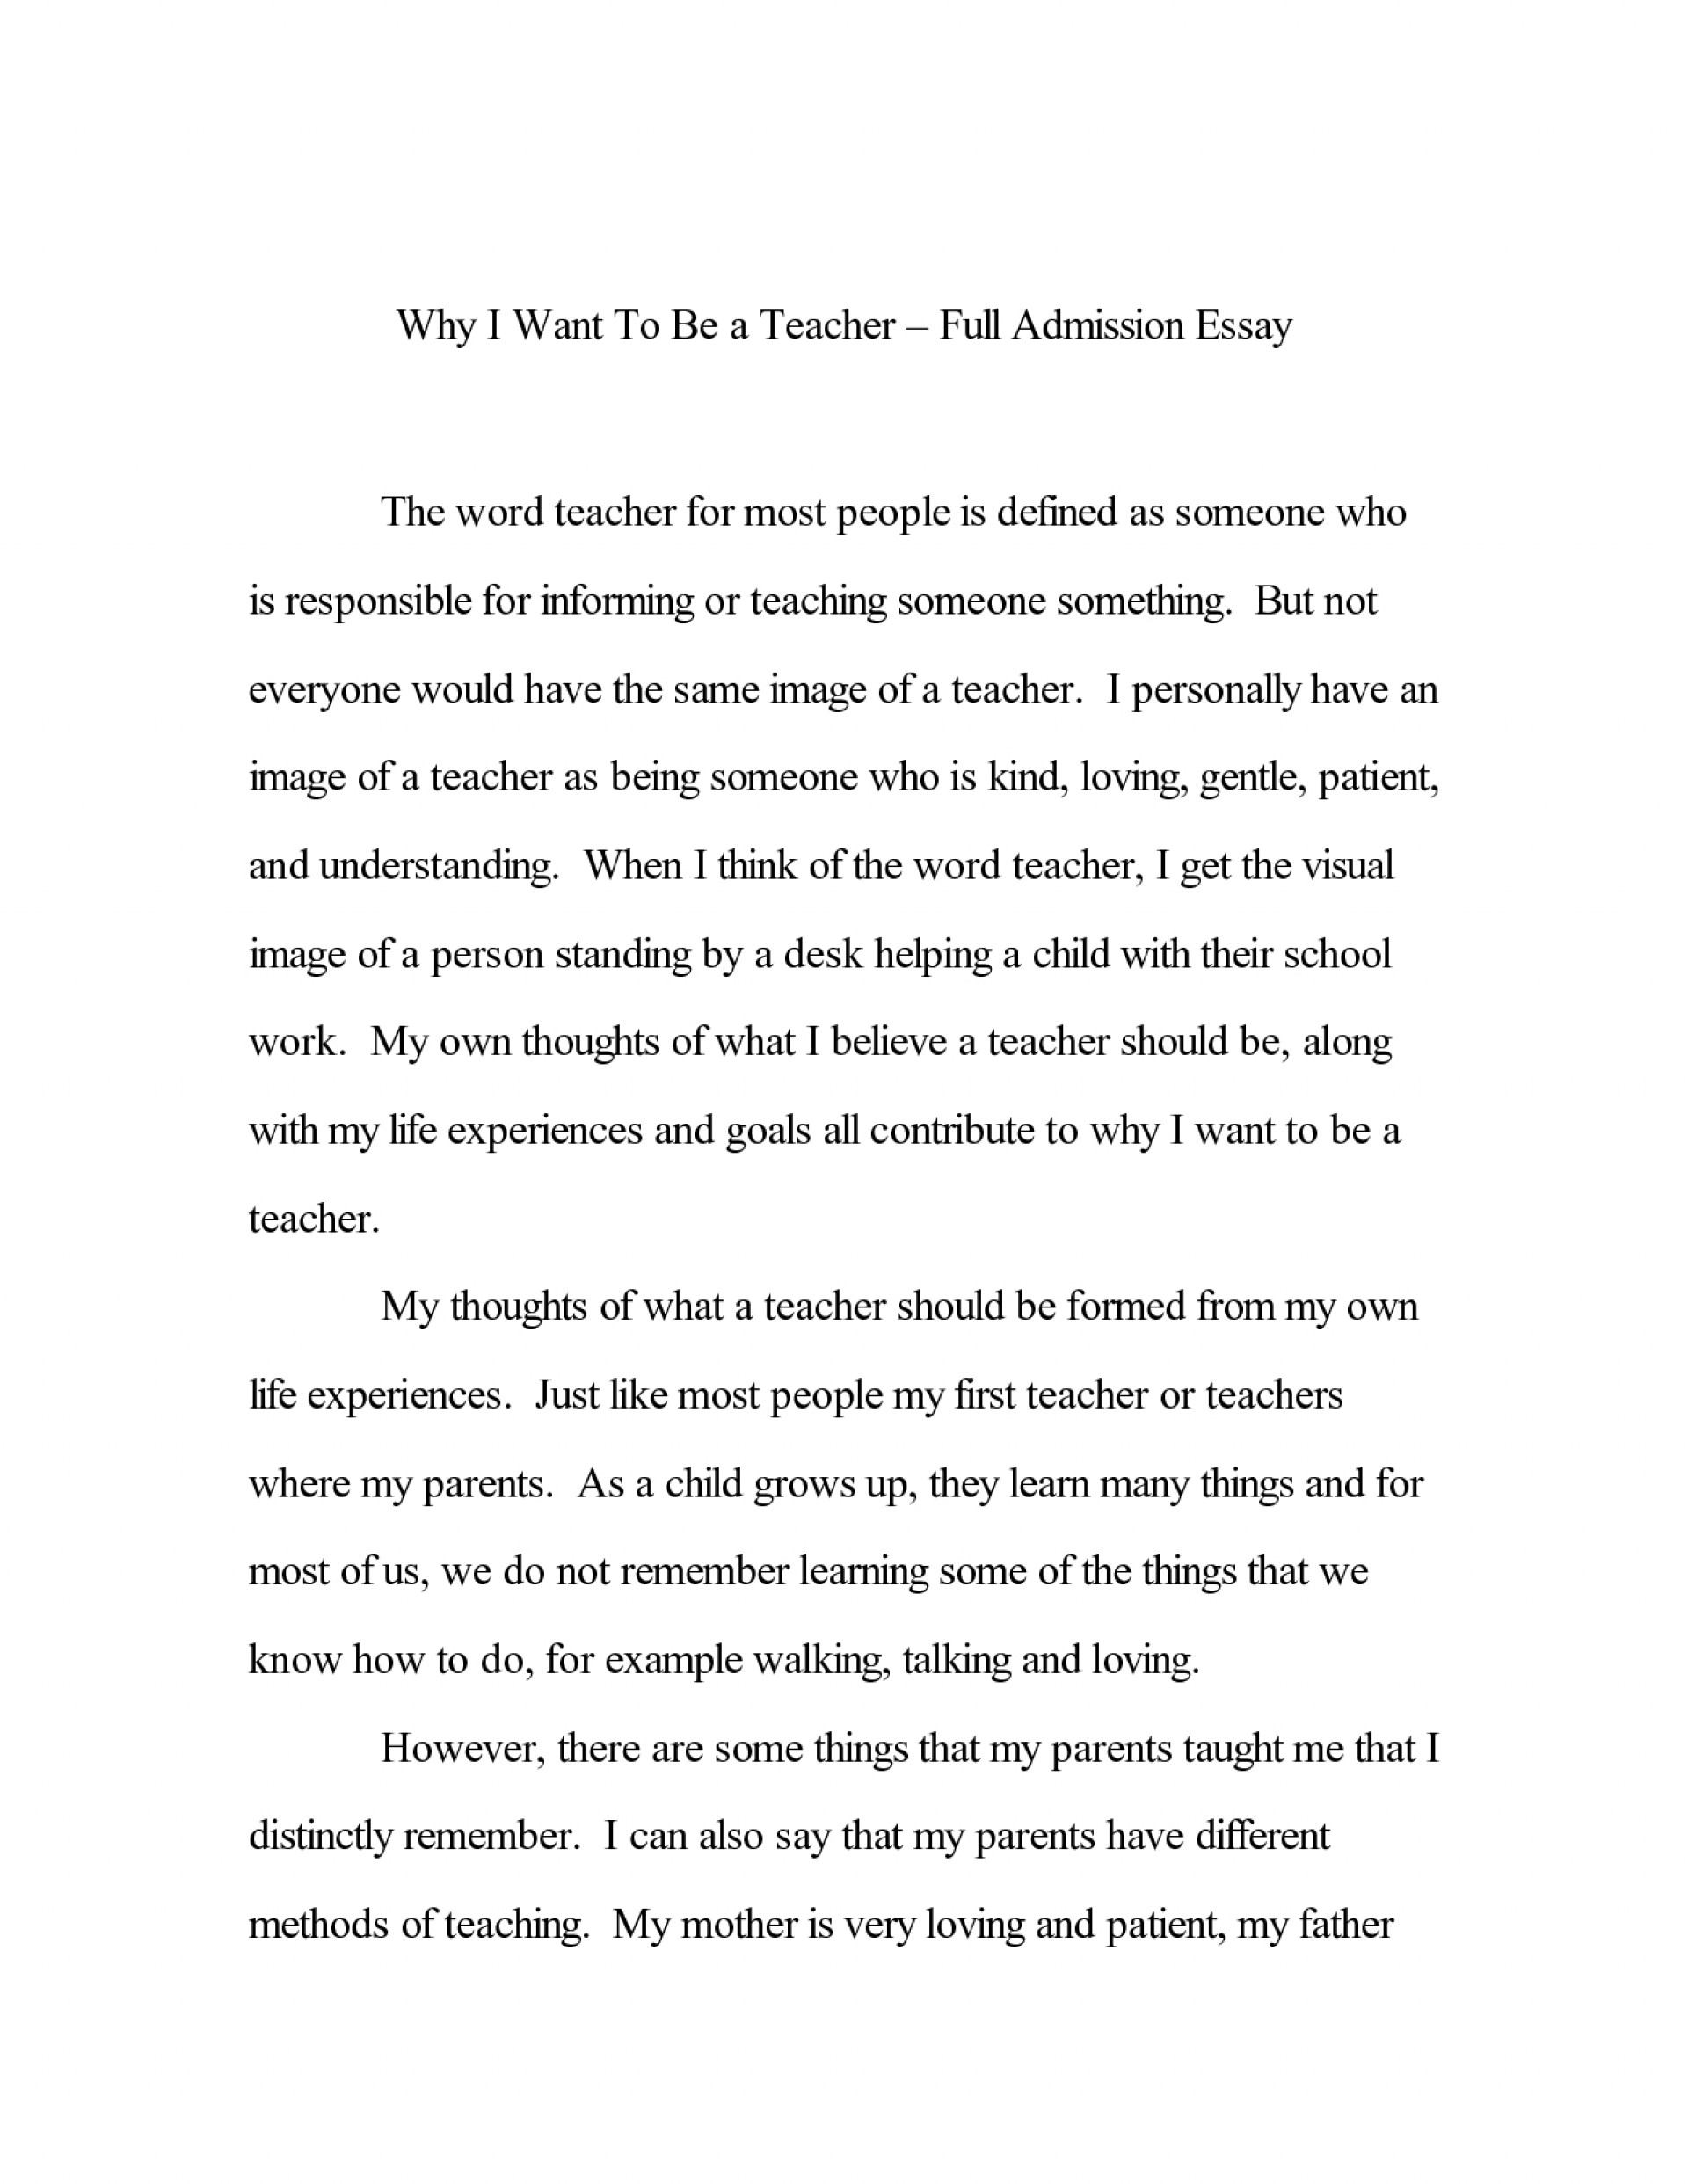 005 College Application Essay Example Writings And Essays What Is Personal For Ideal Vistalist Co I You The Format Topic Prompt Excellent Help Examples 500 Words Writing Workshop Pdf 1920